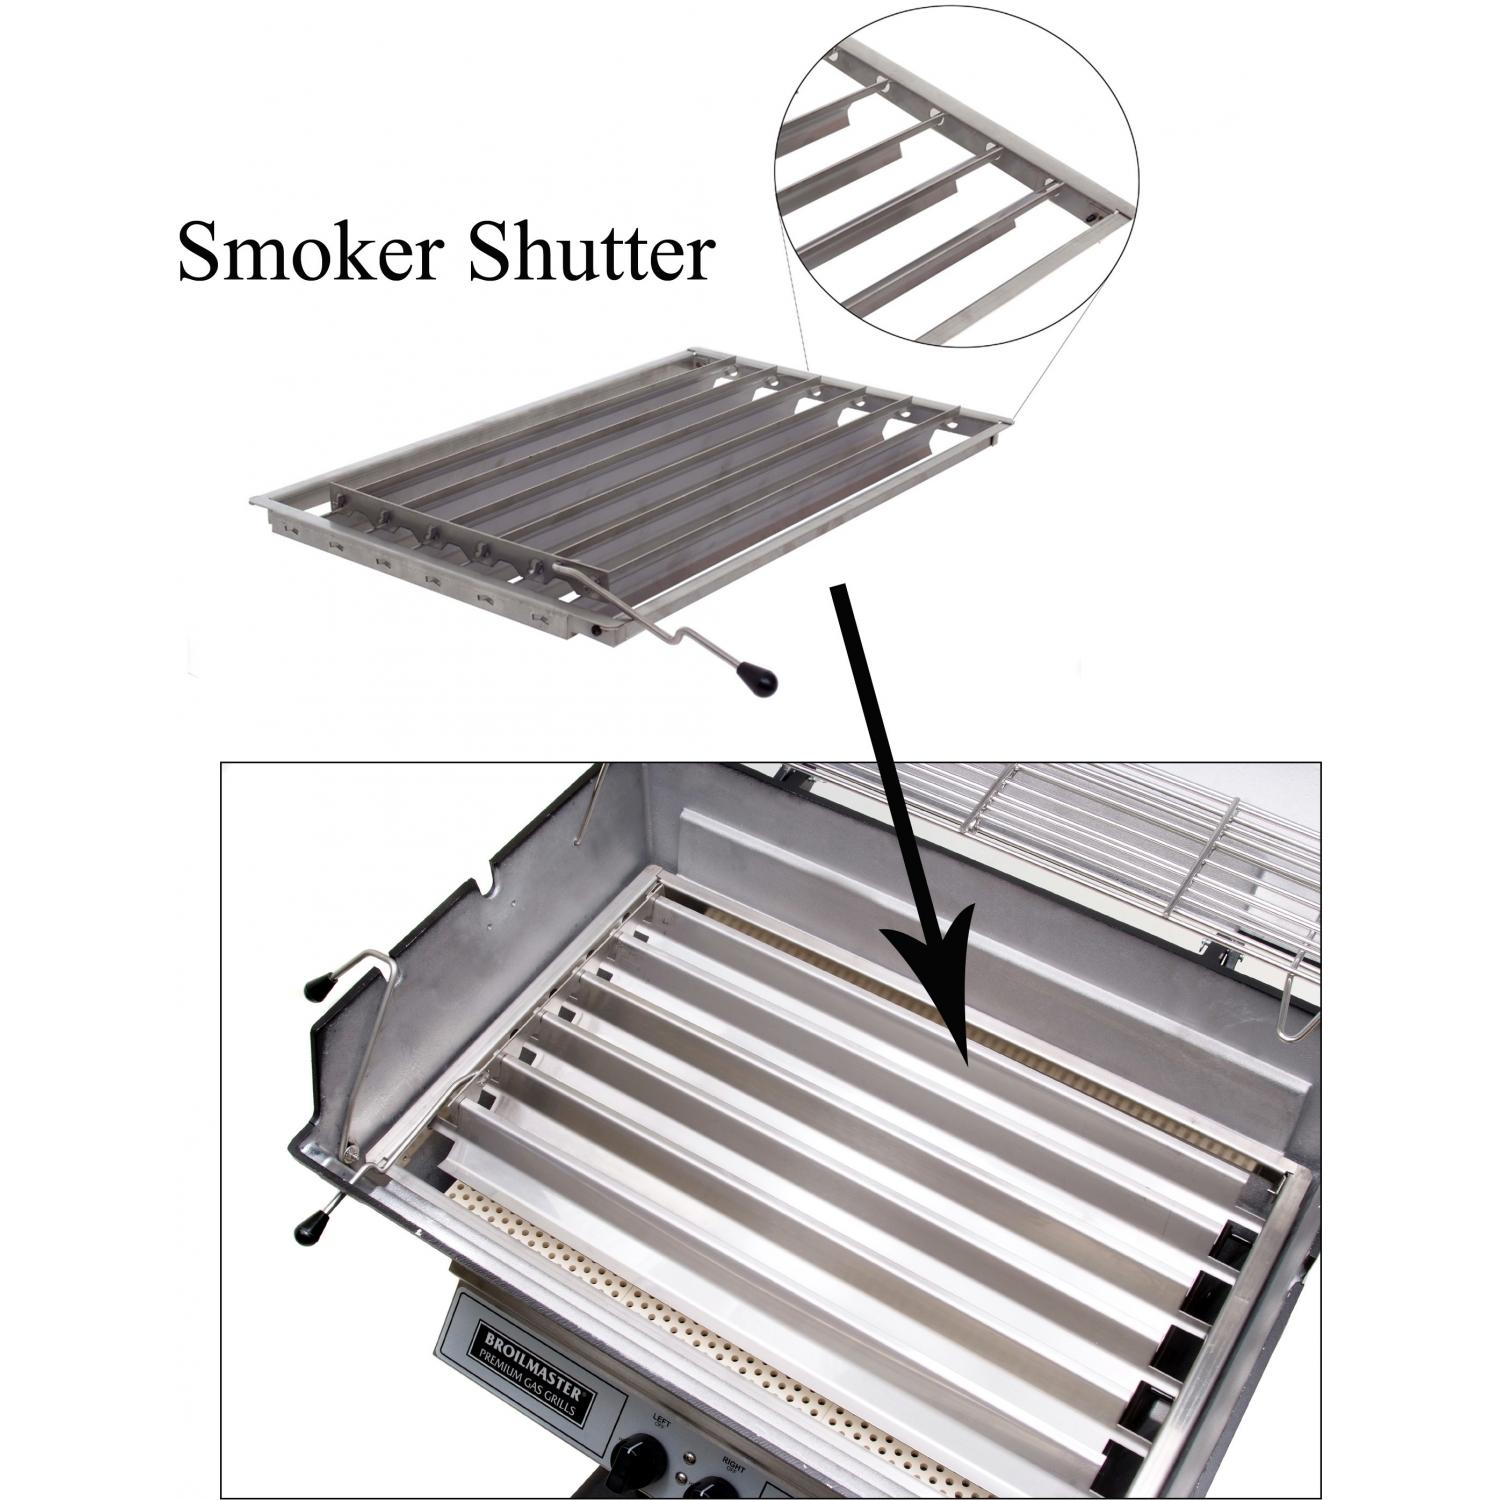 Broilmaster Smoker Shutter And Multi-Level Cooking Grid Kit For H3 Series Grills